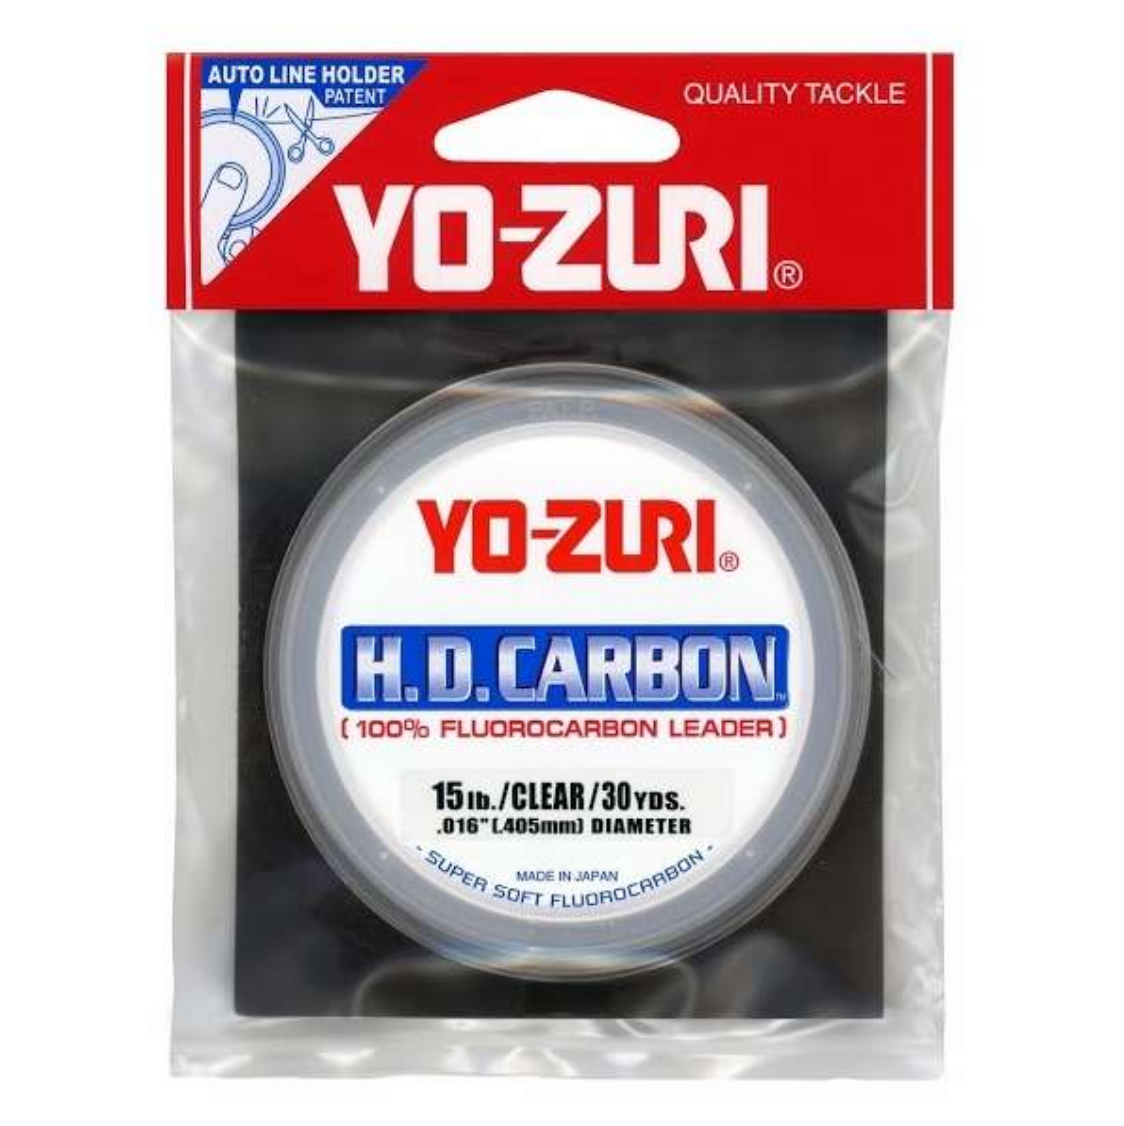 Yo-Zuri 15# Leader - We use 10-15 ft of leader